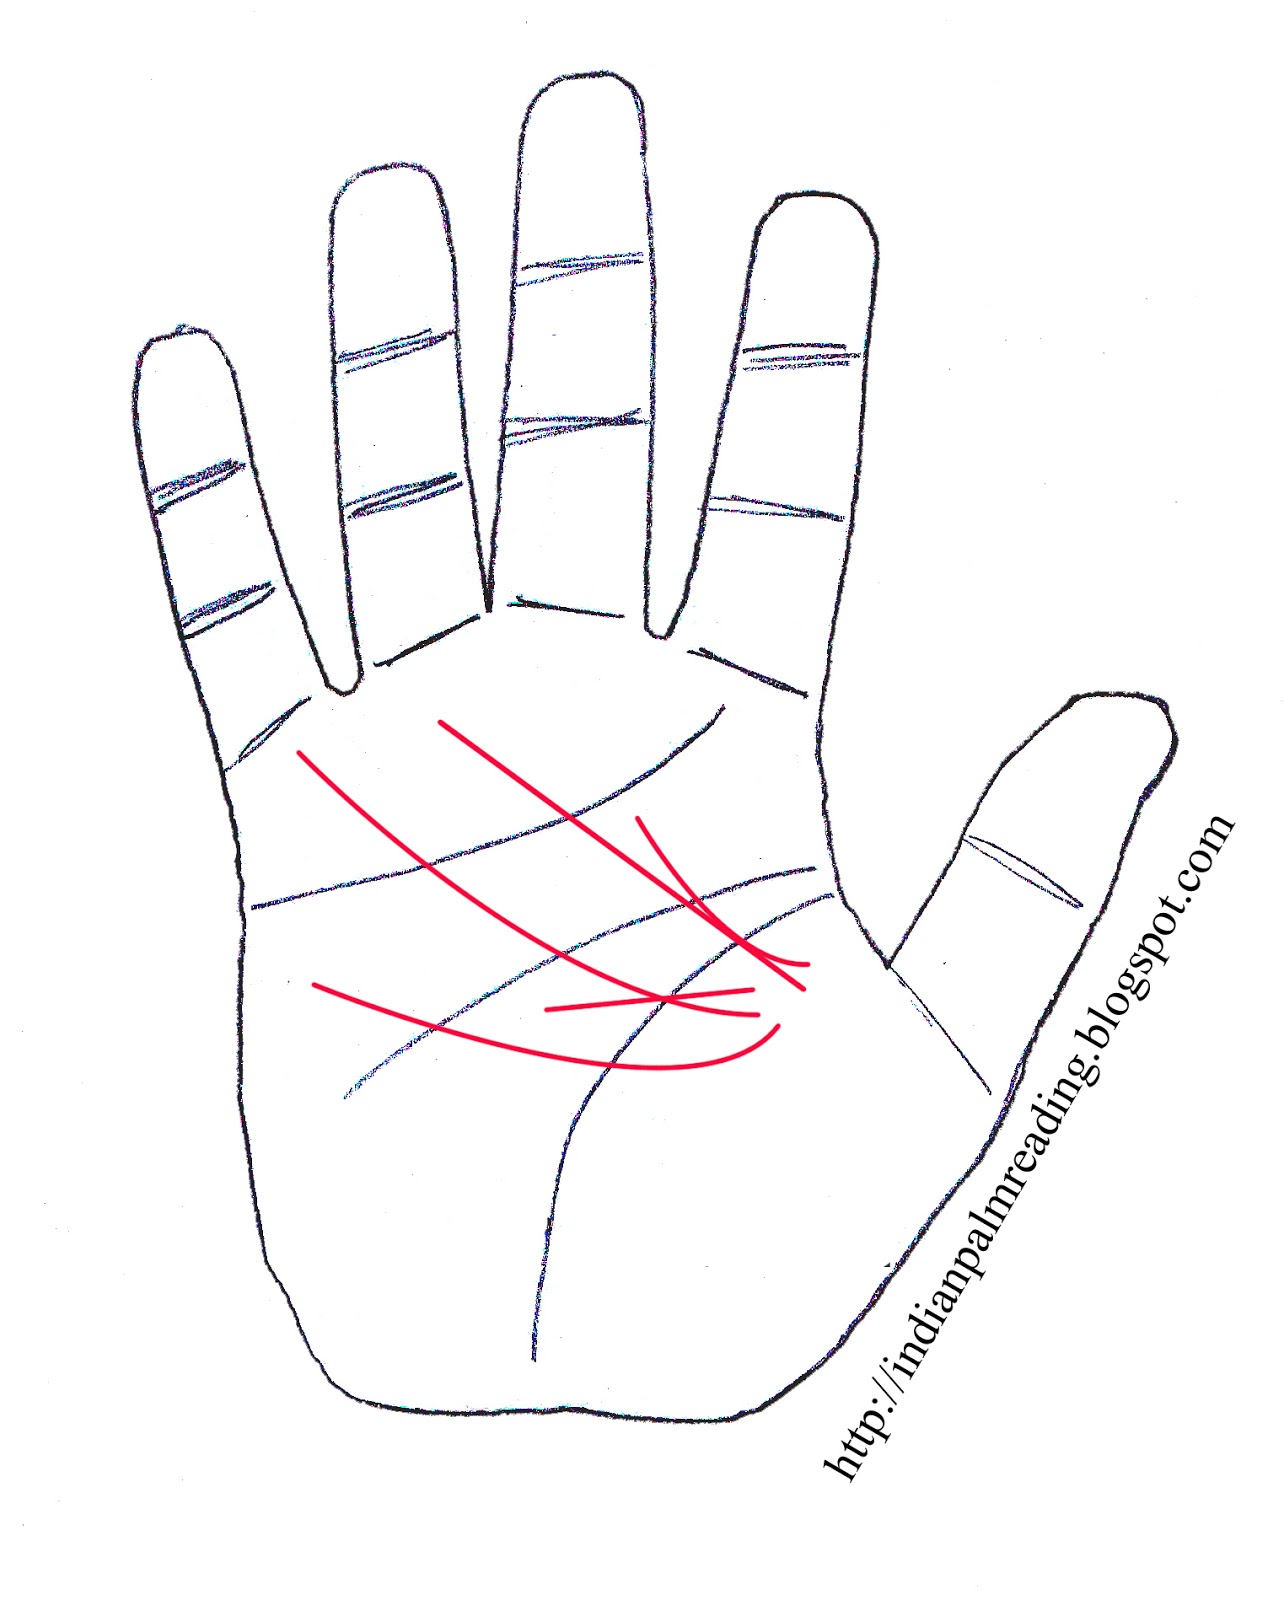 Palmistry Diagram Marriage Line in addition 2004 Buick Rendezvous Engine Diagram Picture in addition Polaris Explorer 300 Engine Diagram likewise 3 4 Liter Pontiac Grand Am Engine Diagram additionally Sony Cdx Gt360mp Wiring Diagram. on buick wiring diagram